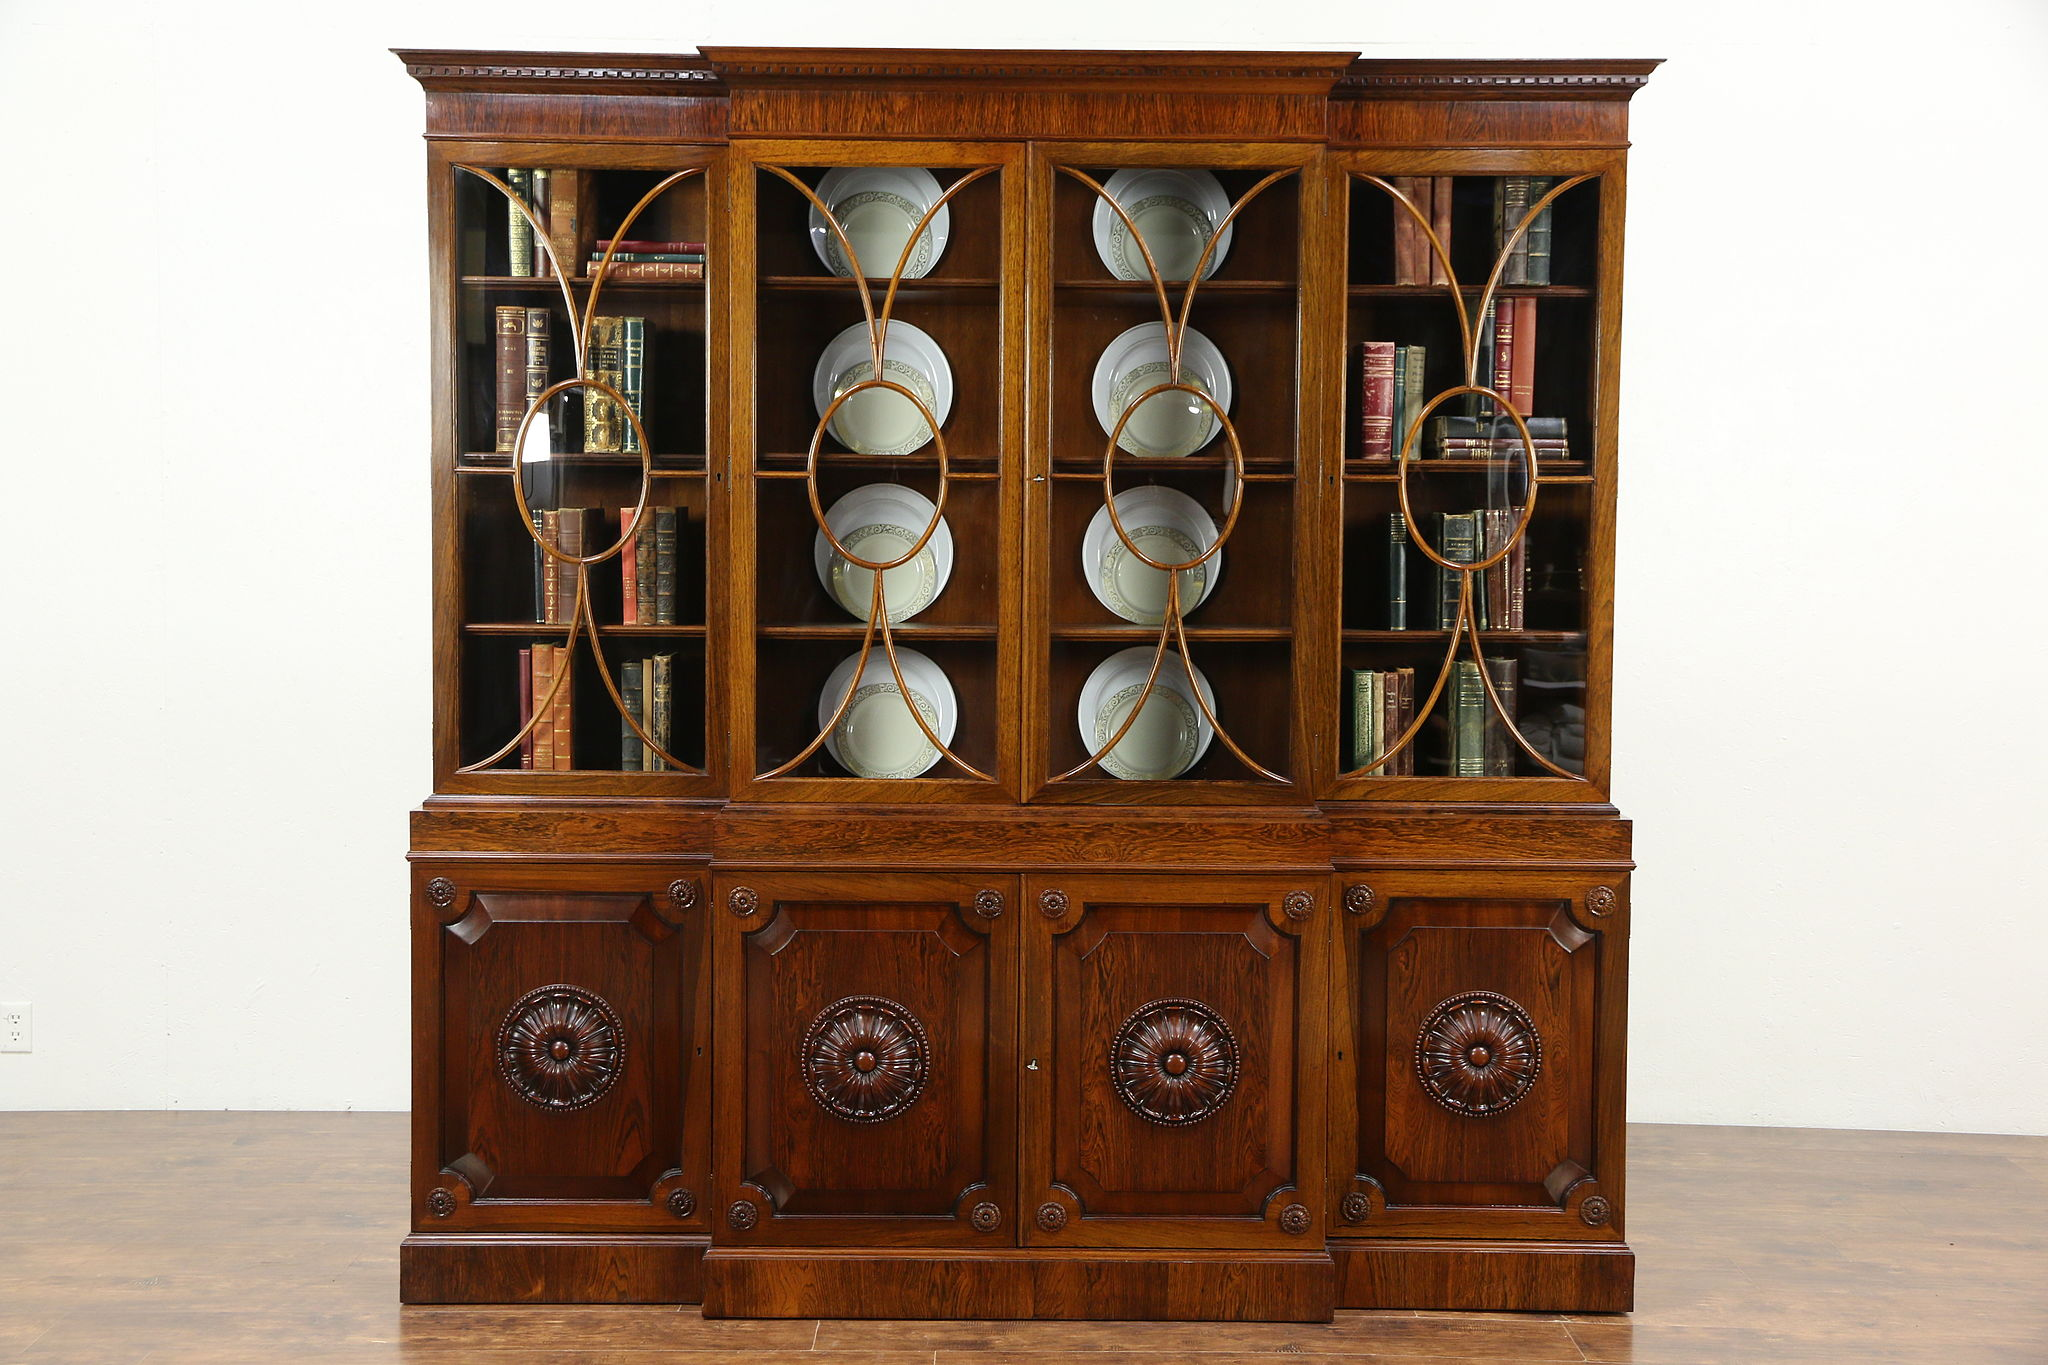 Charmant Rosewood Vintage Classical Breakfront China Cabinet Or Bookcase, Convex  Glass